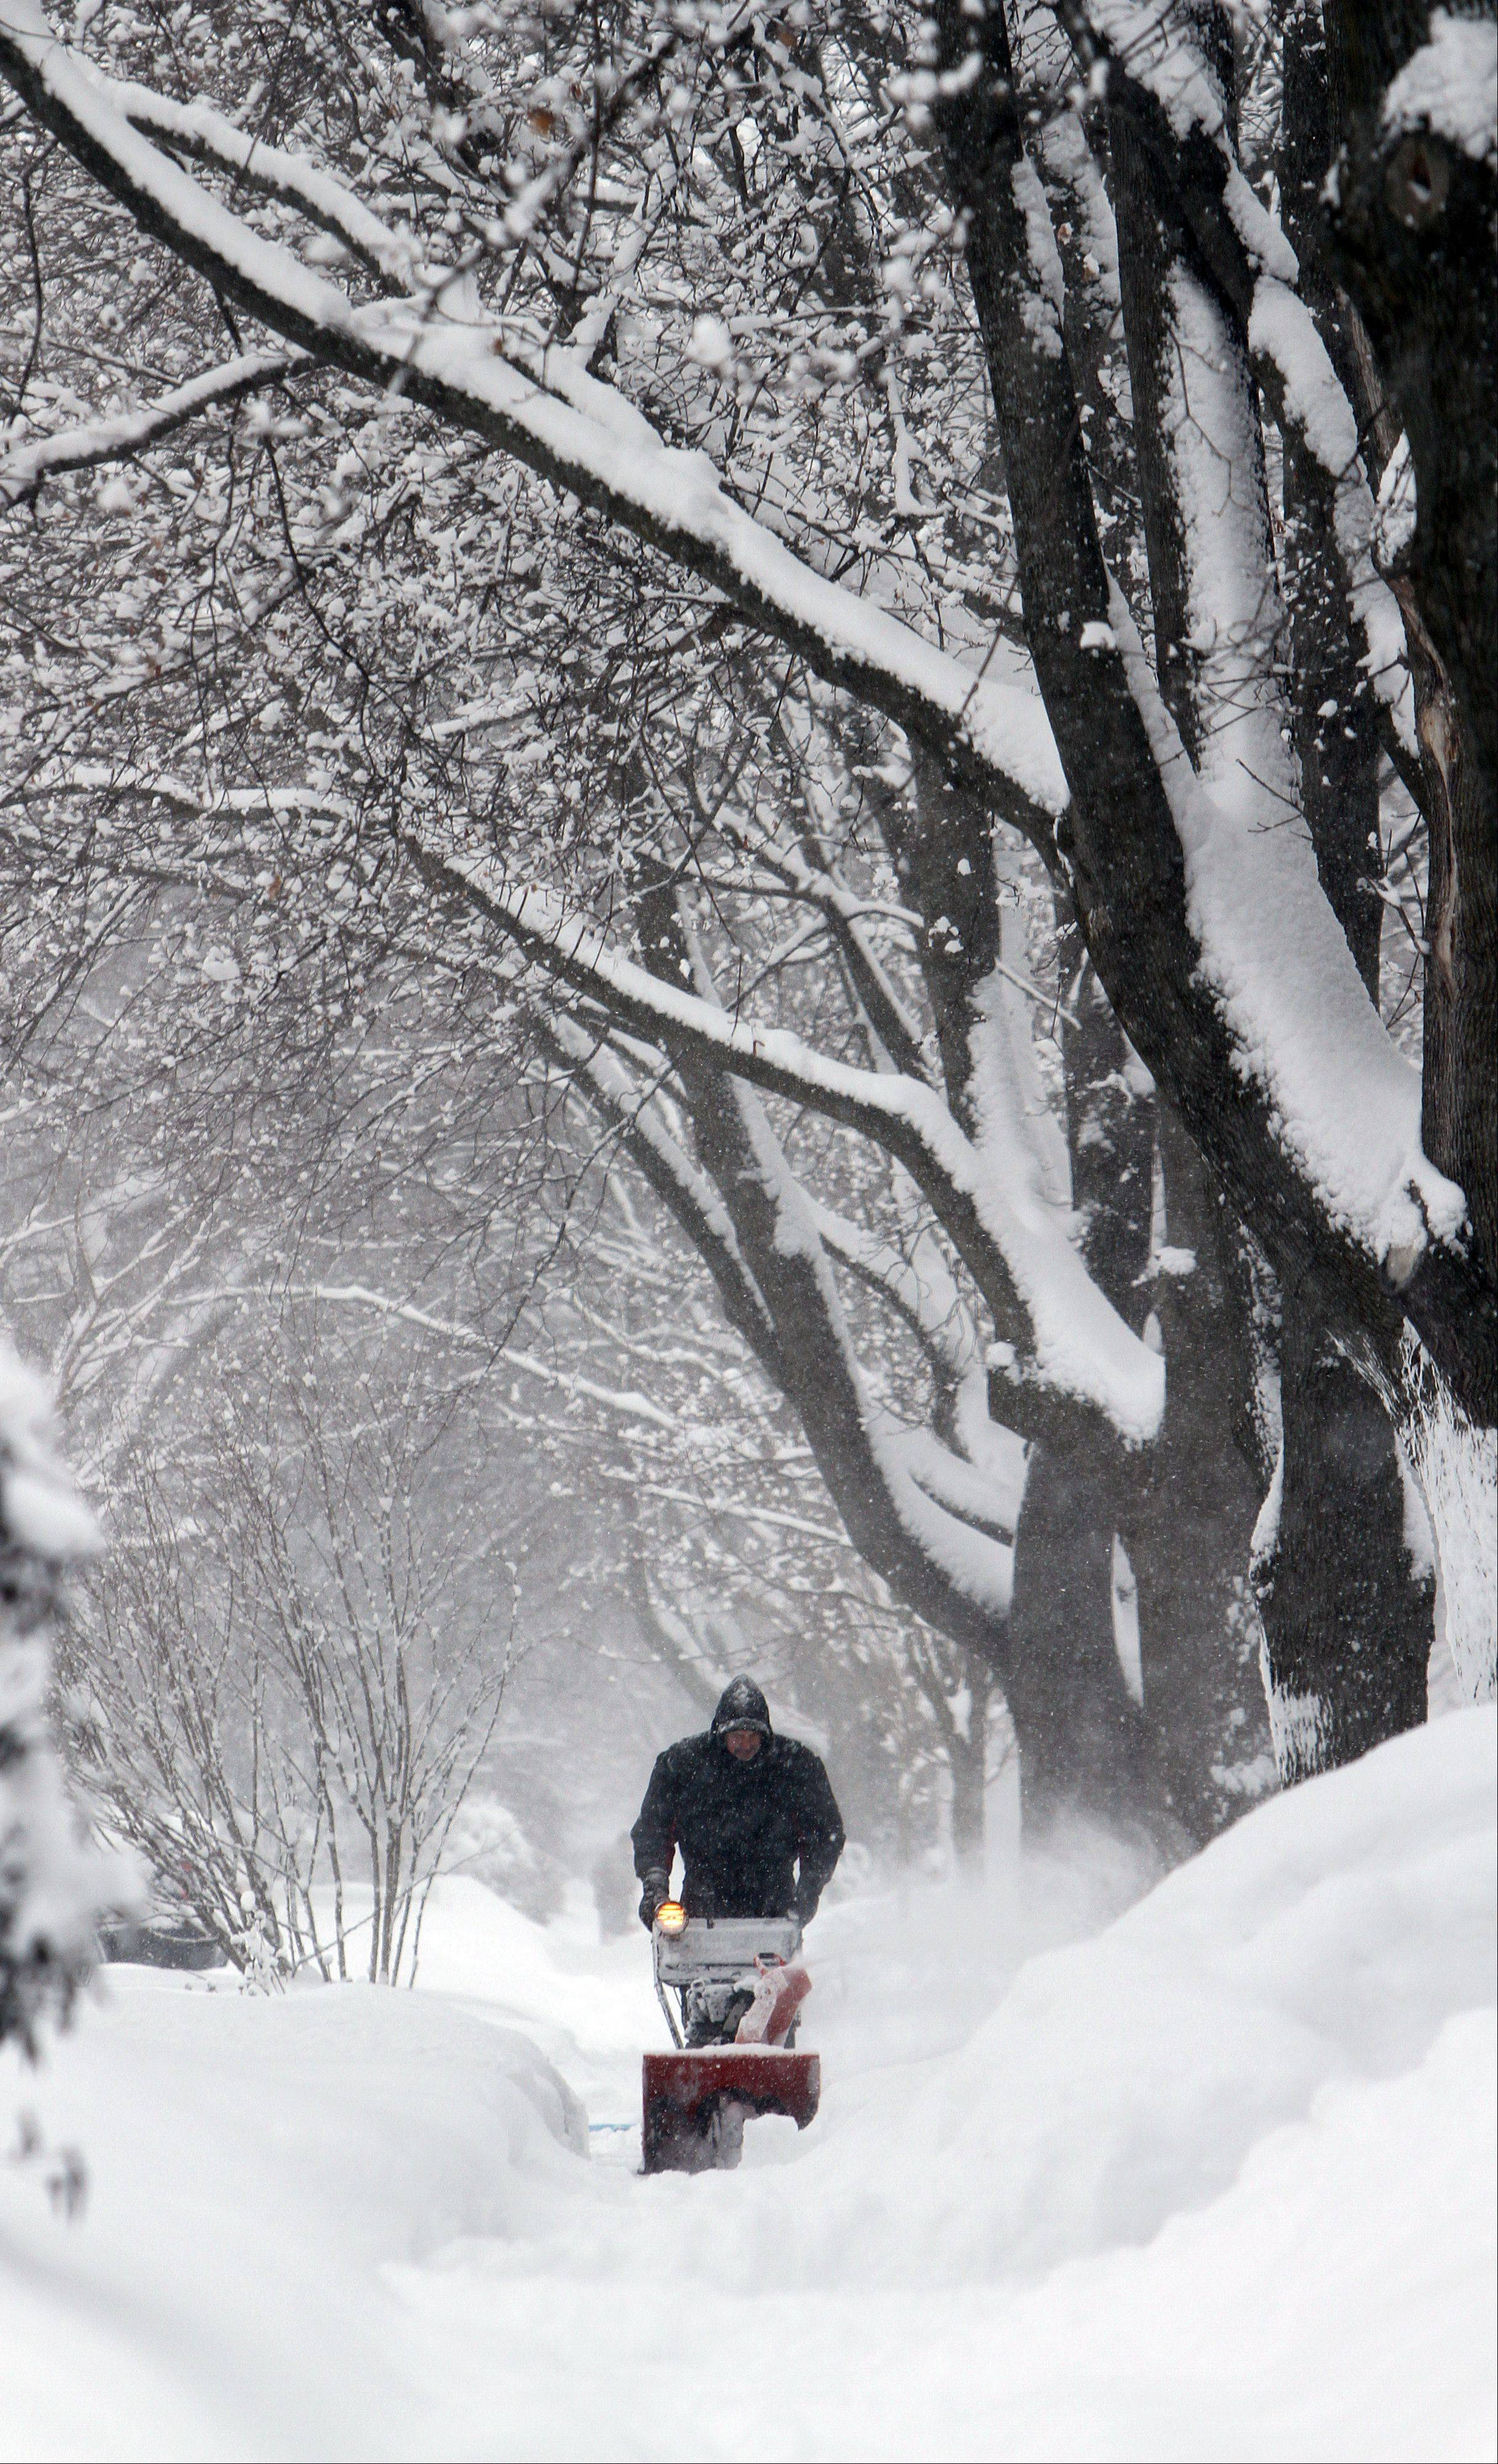 George Hoffman snow blows his sidewalk along Burdick Street in Libertyville on Thursday after a snowstorm dumped almost a foot of snow on the area.